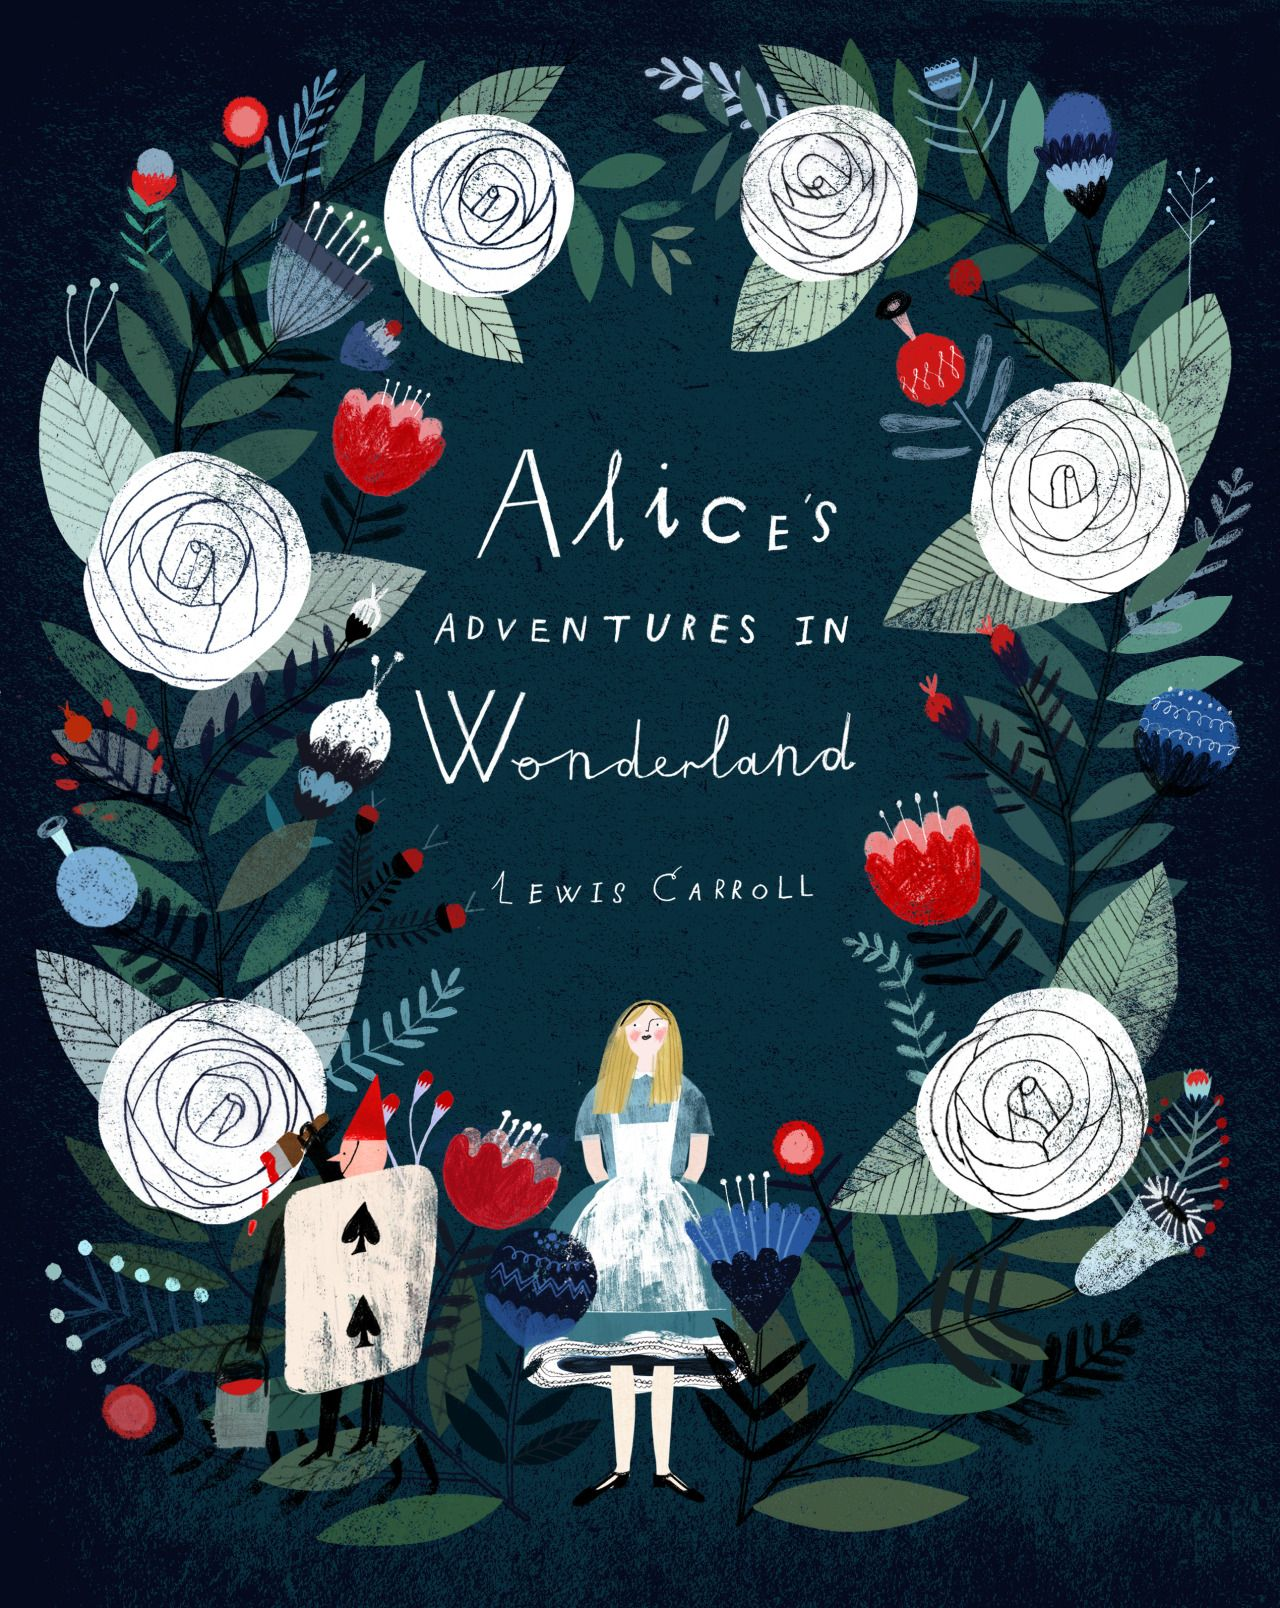 Book Cover Design Drawing : Alice s adventures in wonderland by lewis carroll design